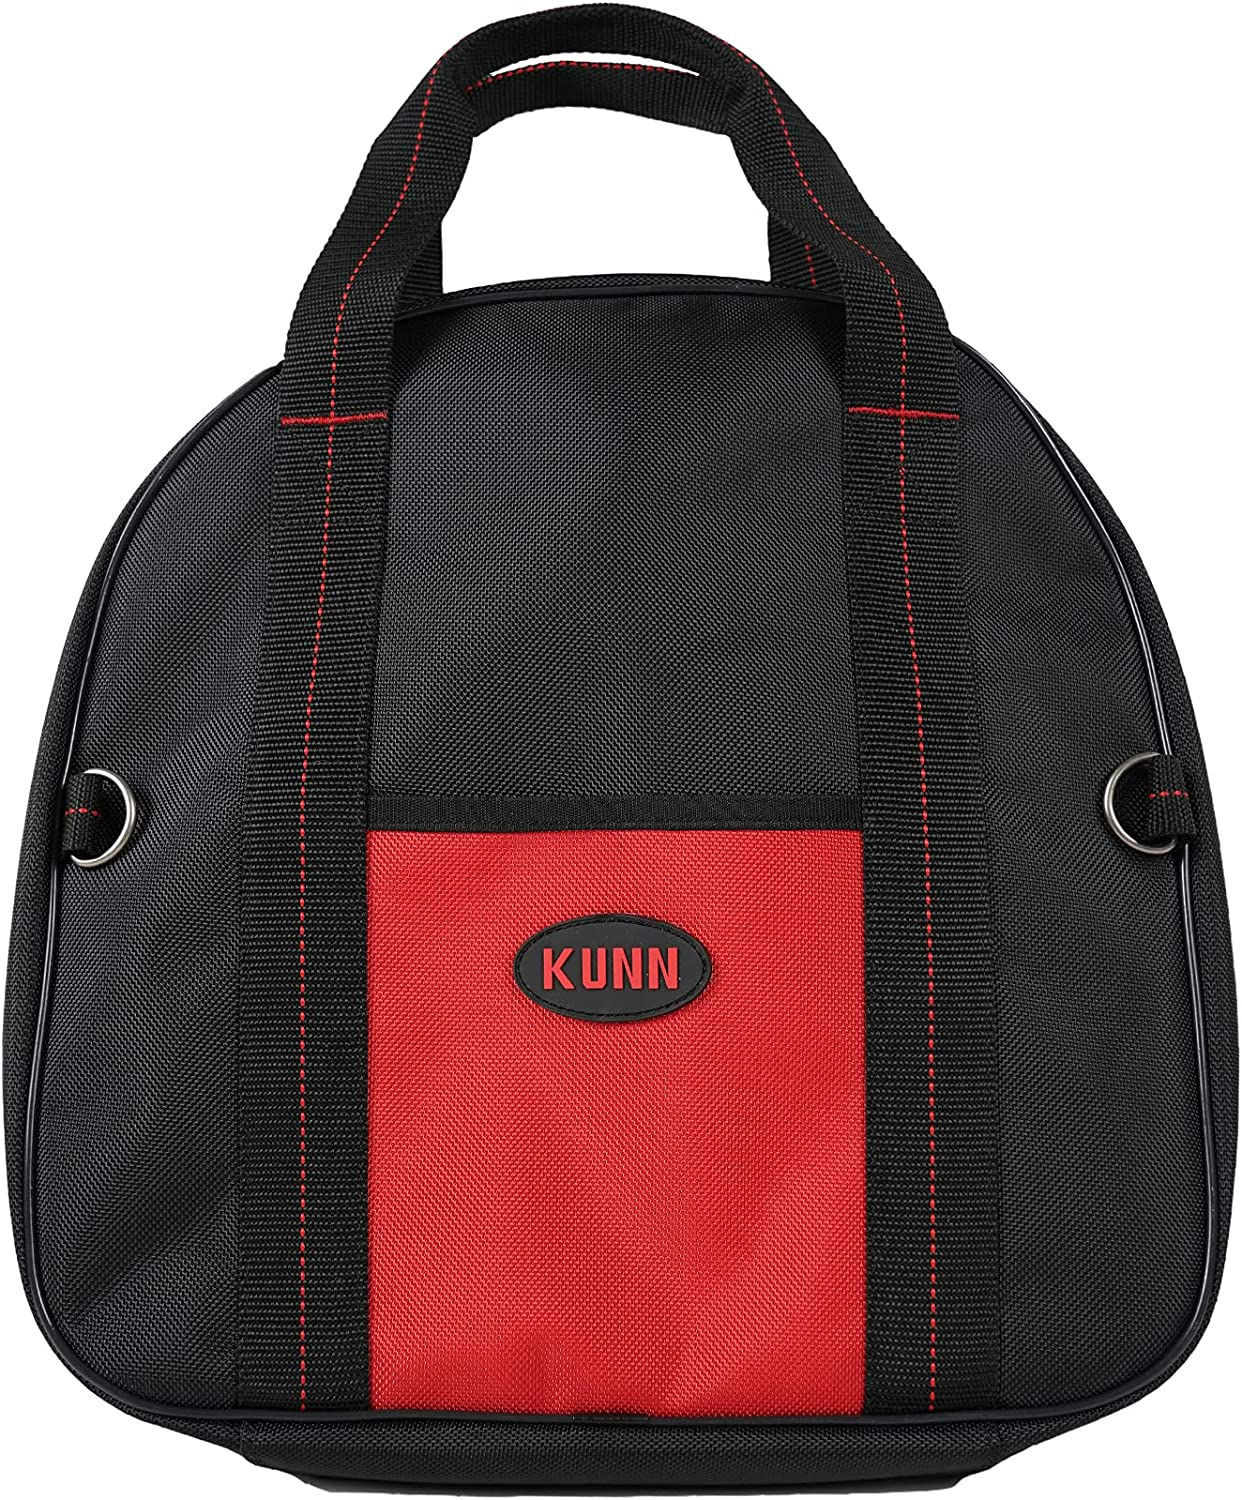 Free shipping anywhere in the nation KUNN Jumper Cable Dealing full price reduction Bag X Tools 14.5